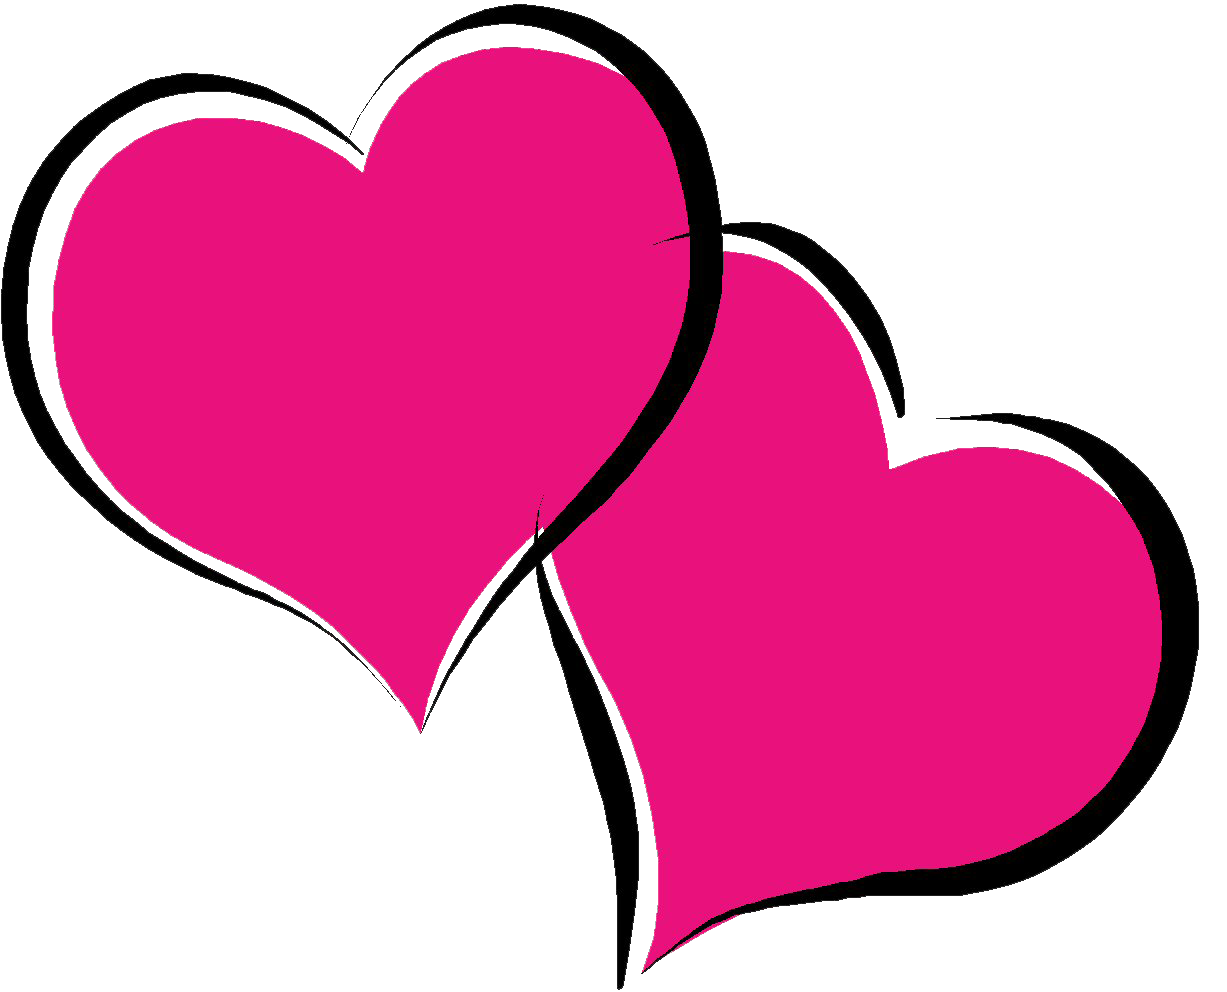 Pink hearts png. Hot heart pic